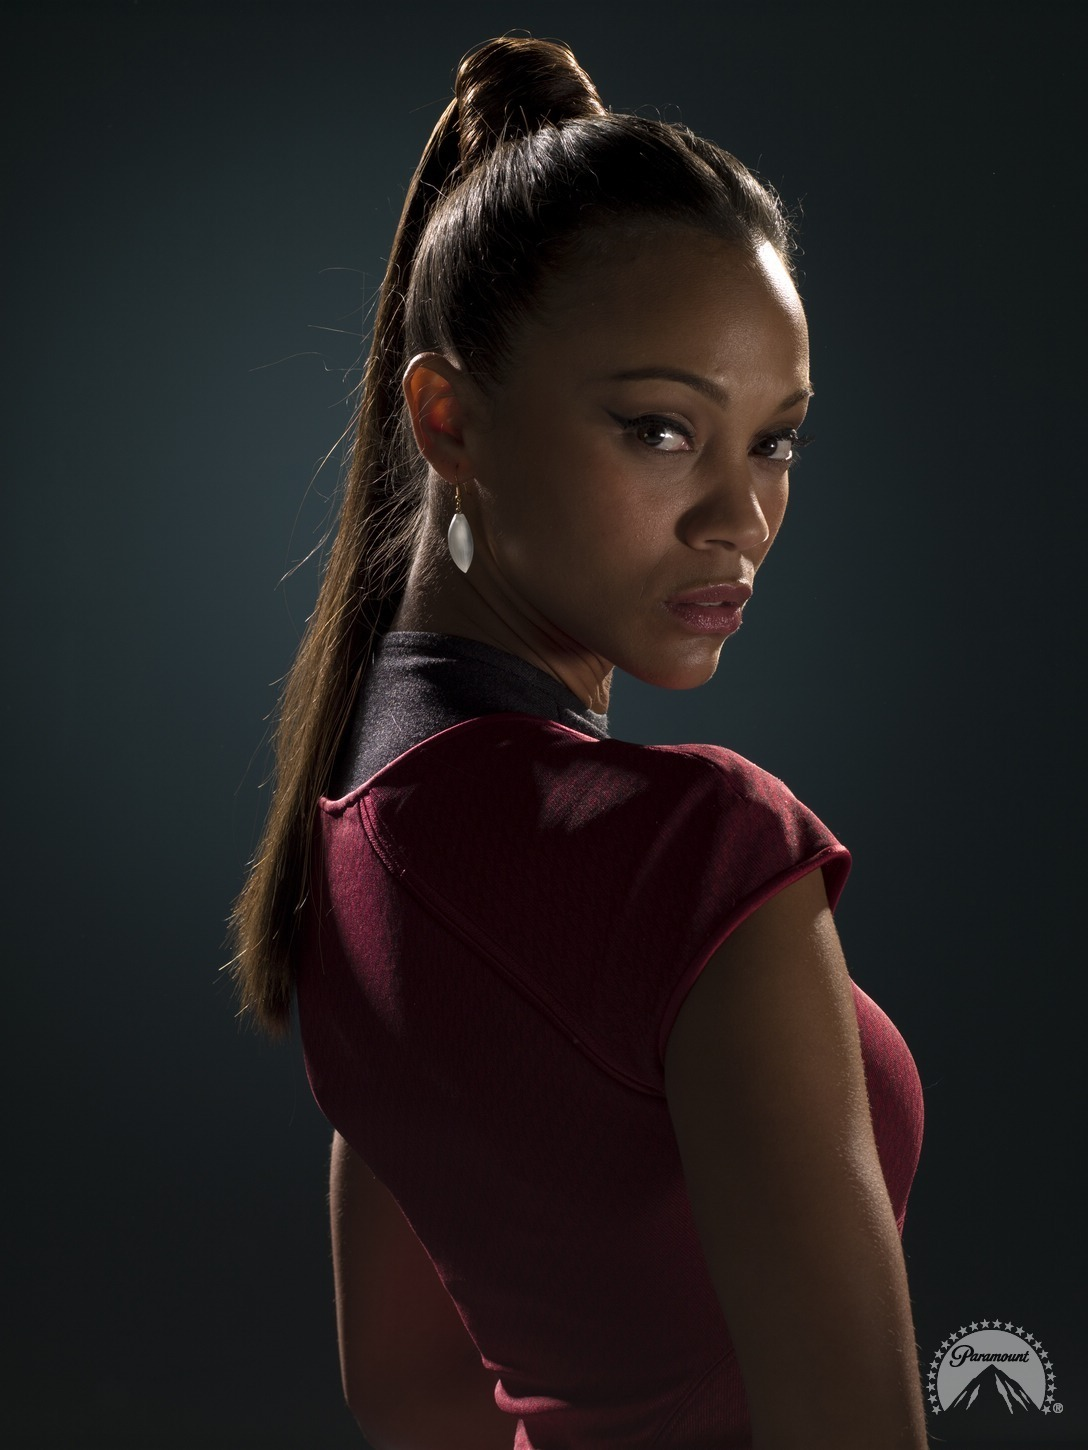 Zoe-Saldana-Star-Trek-Promotional-Photography-zoe-saldana-9898559-1088    Zoe Saldana Star Trek